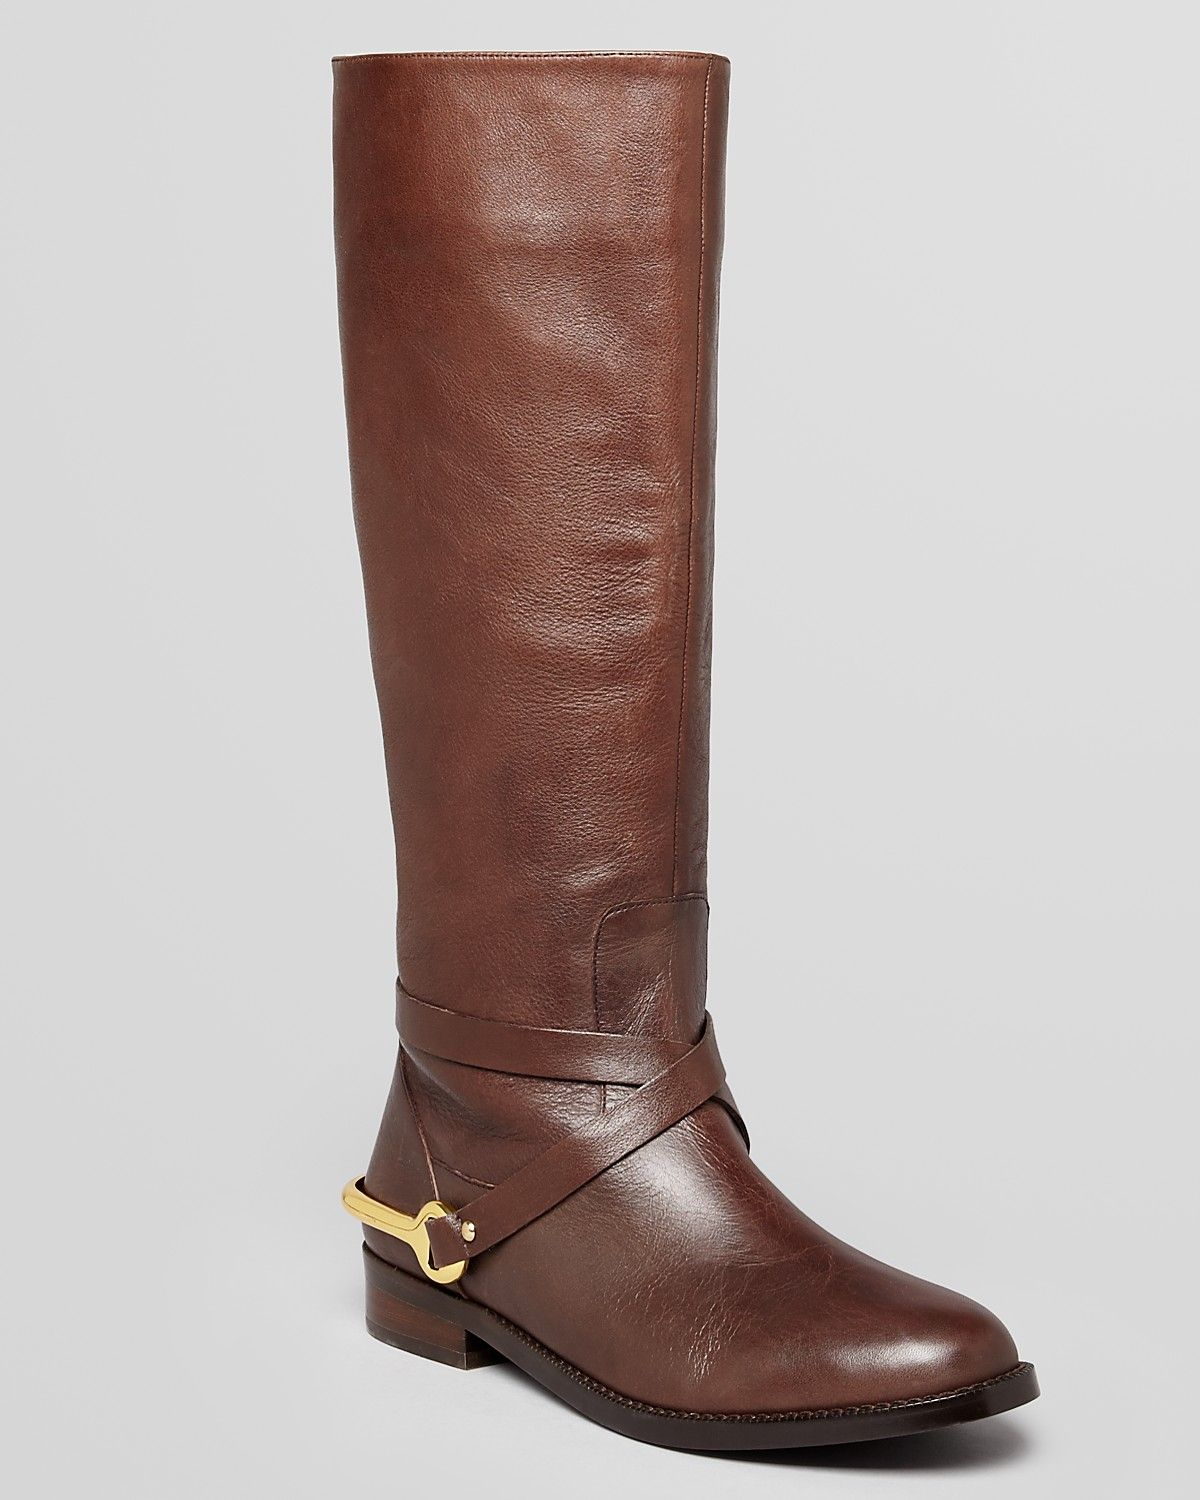 Pin on FASHION | Boots